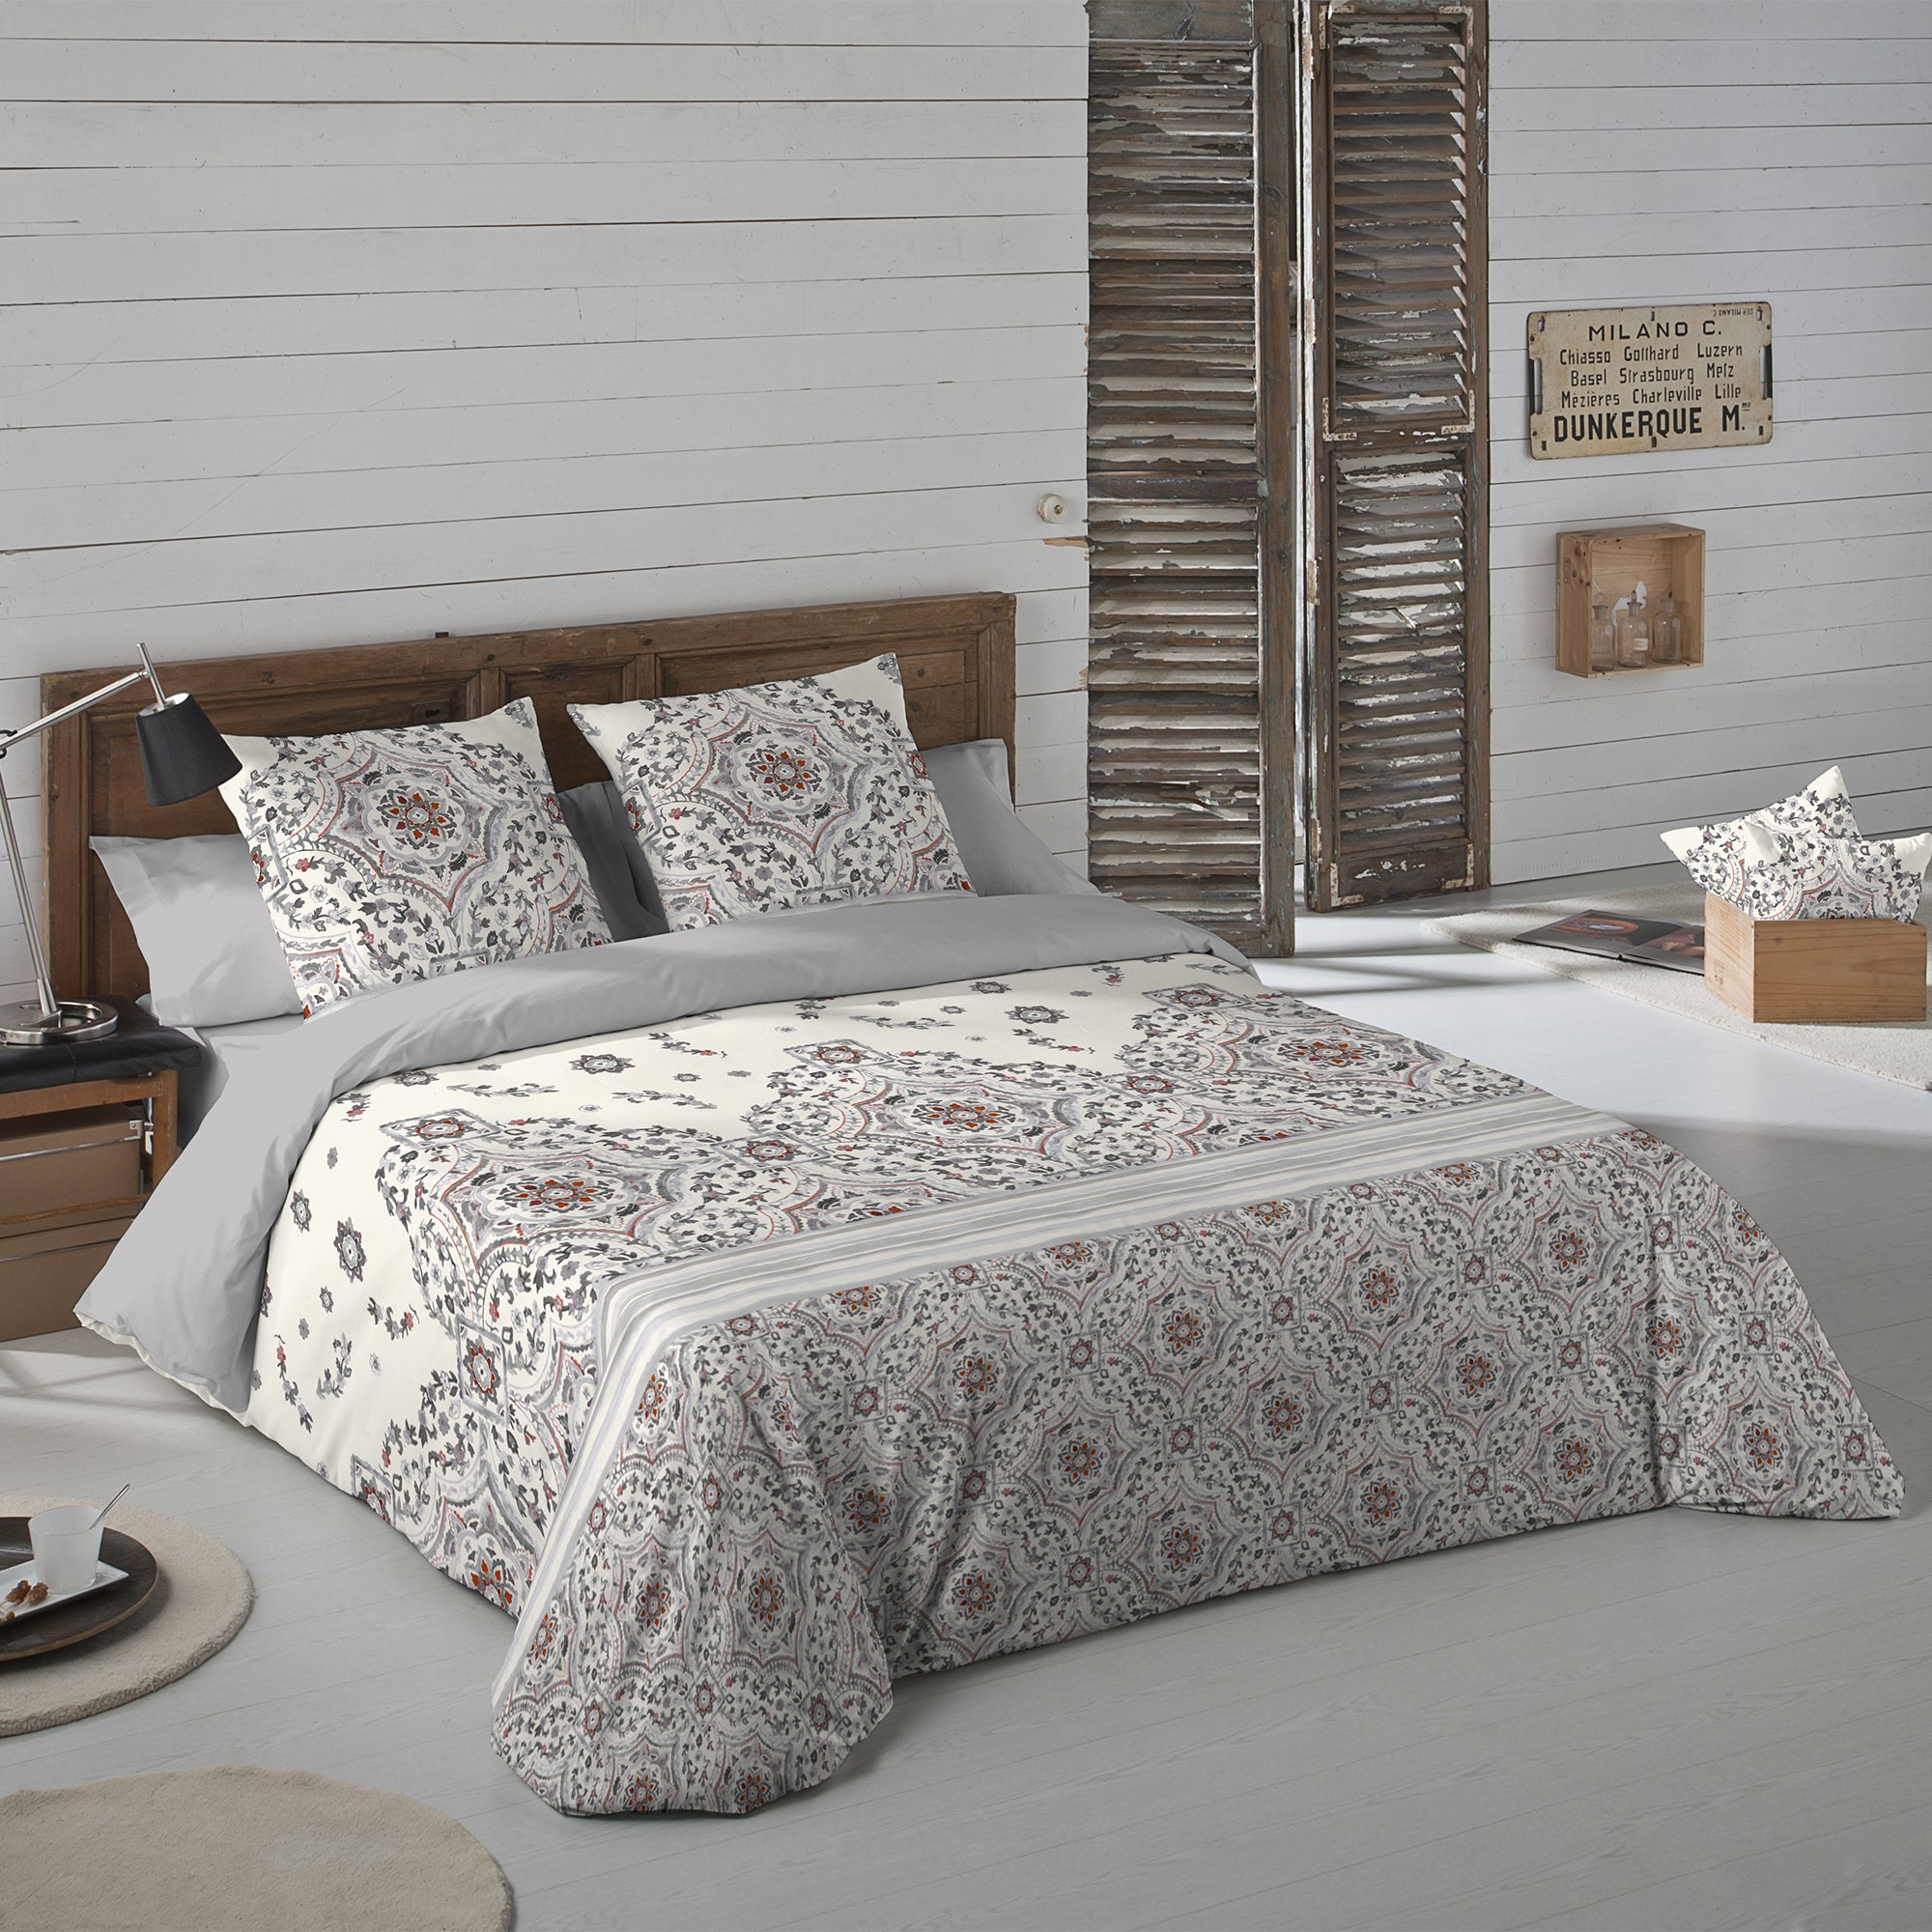 linge de lit gardenia flanelle blancheporte. Black Bedroom Furniture Sets. Home Design Ideas